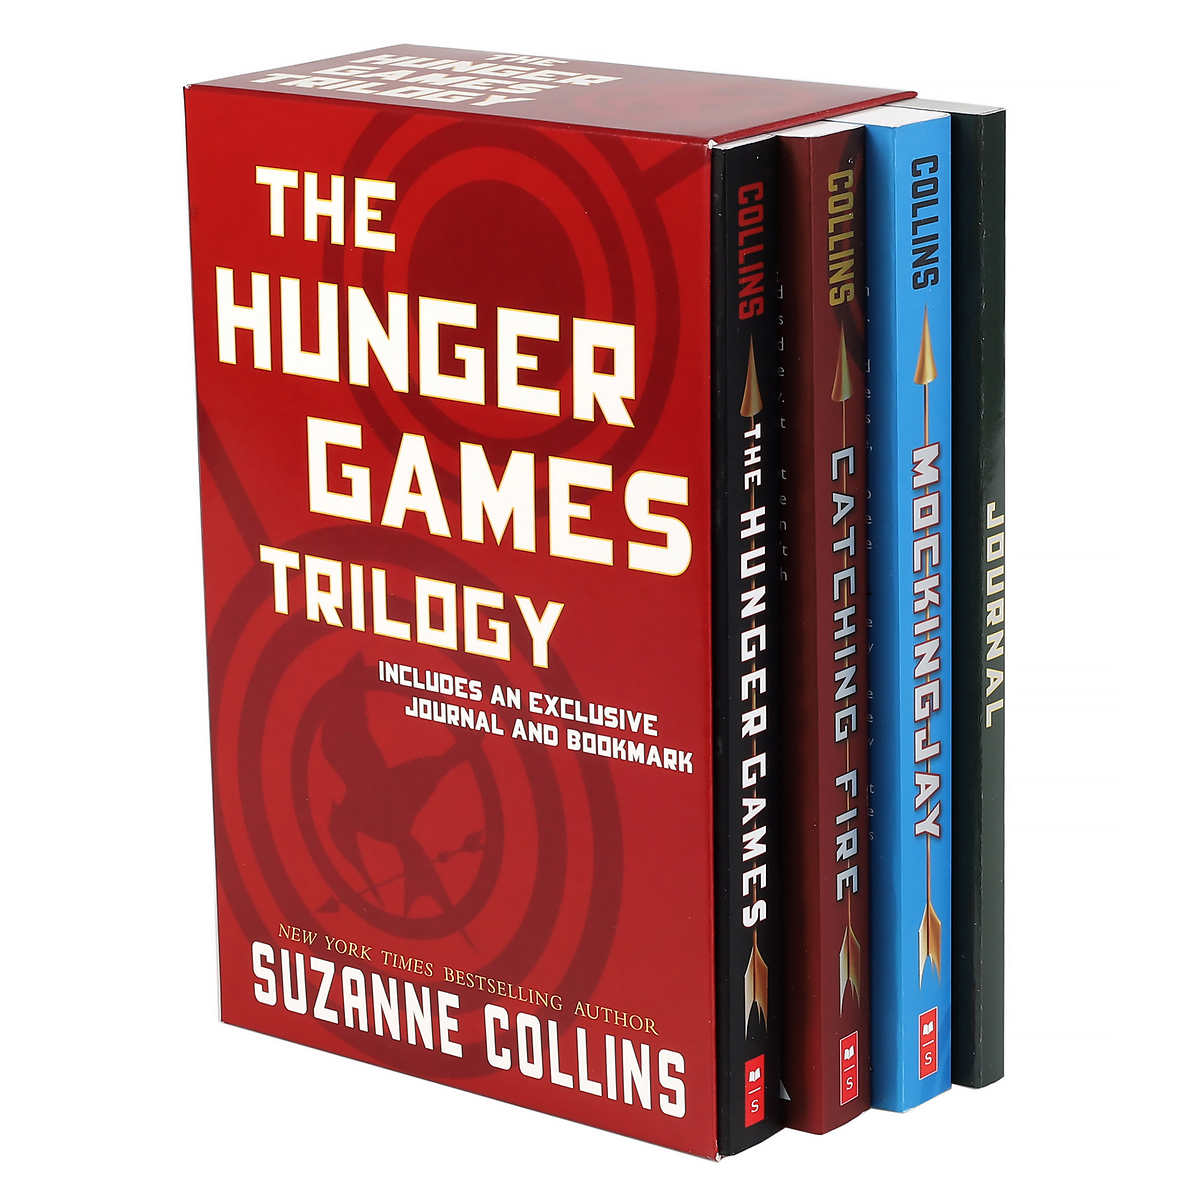 The Hunger Games Trilogy: 3 Books and Journal Box Set